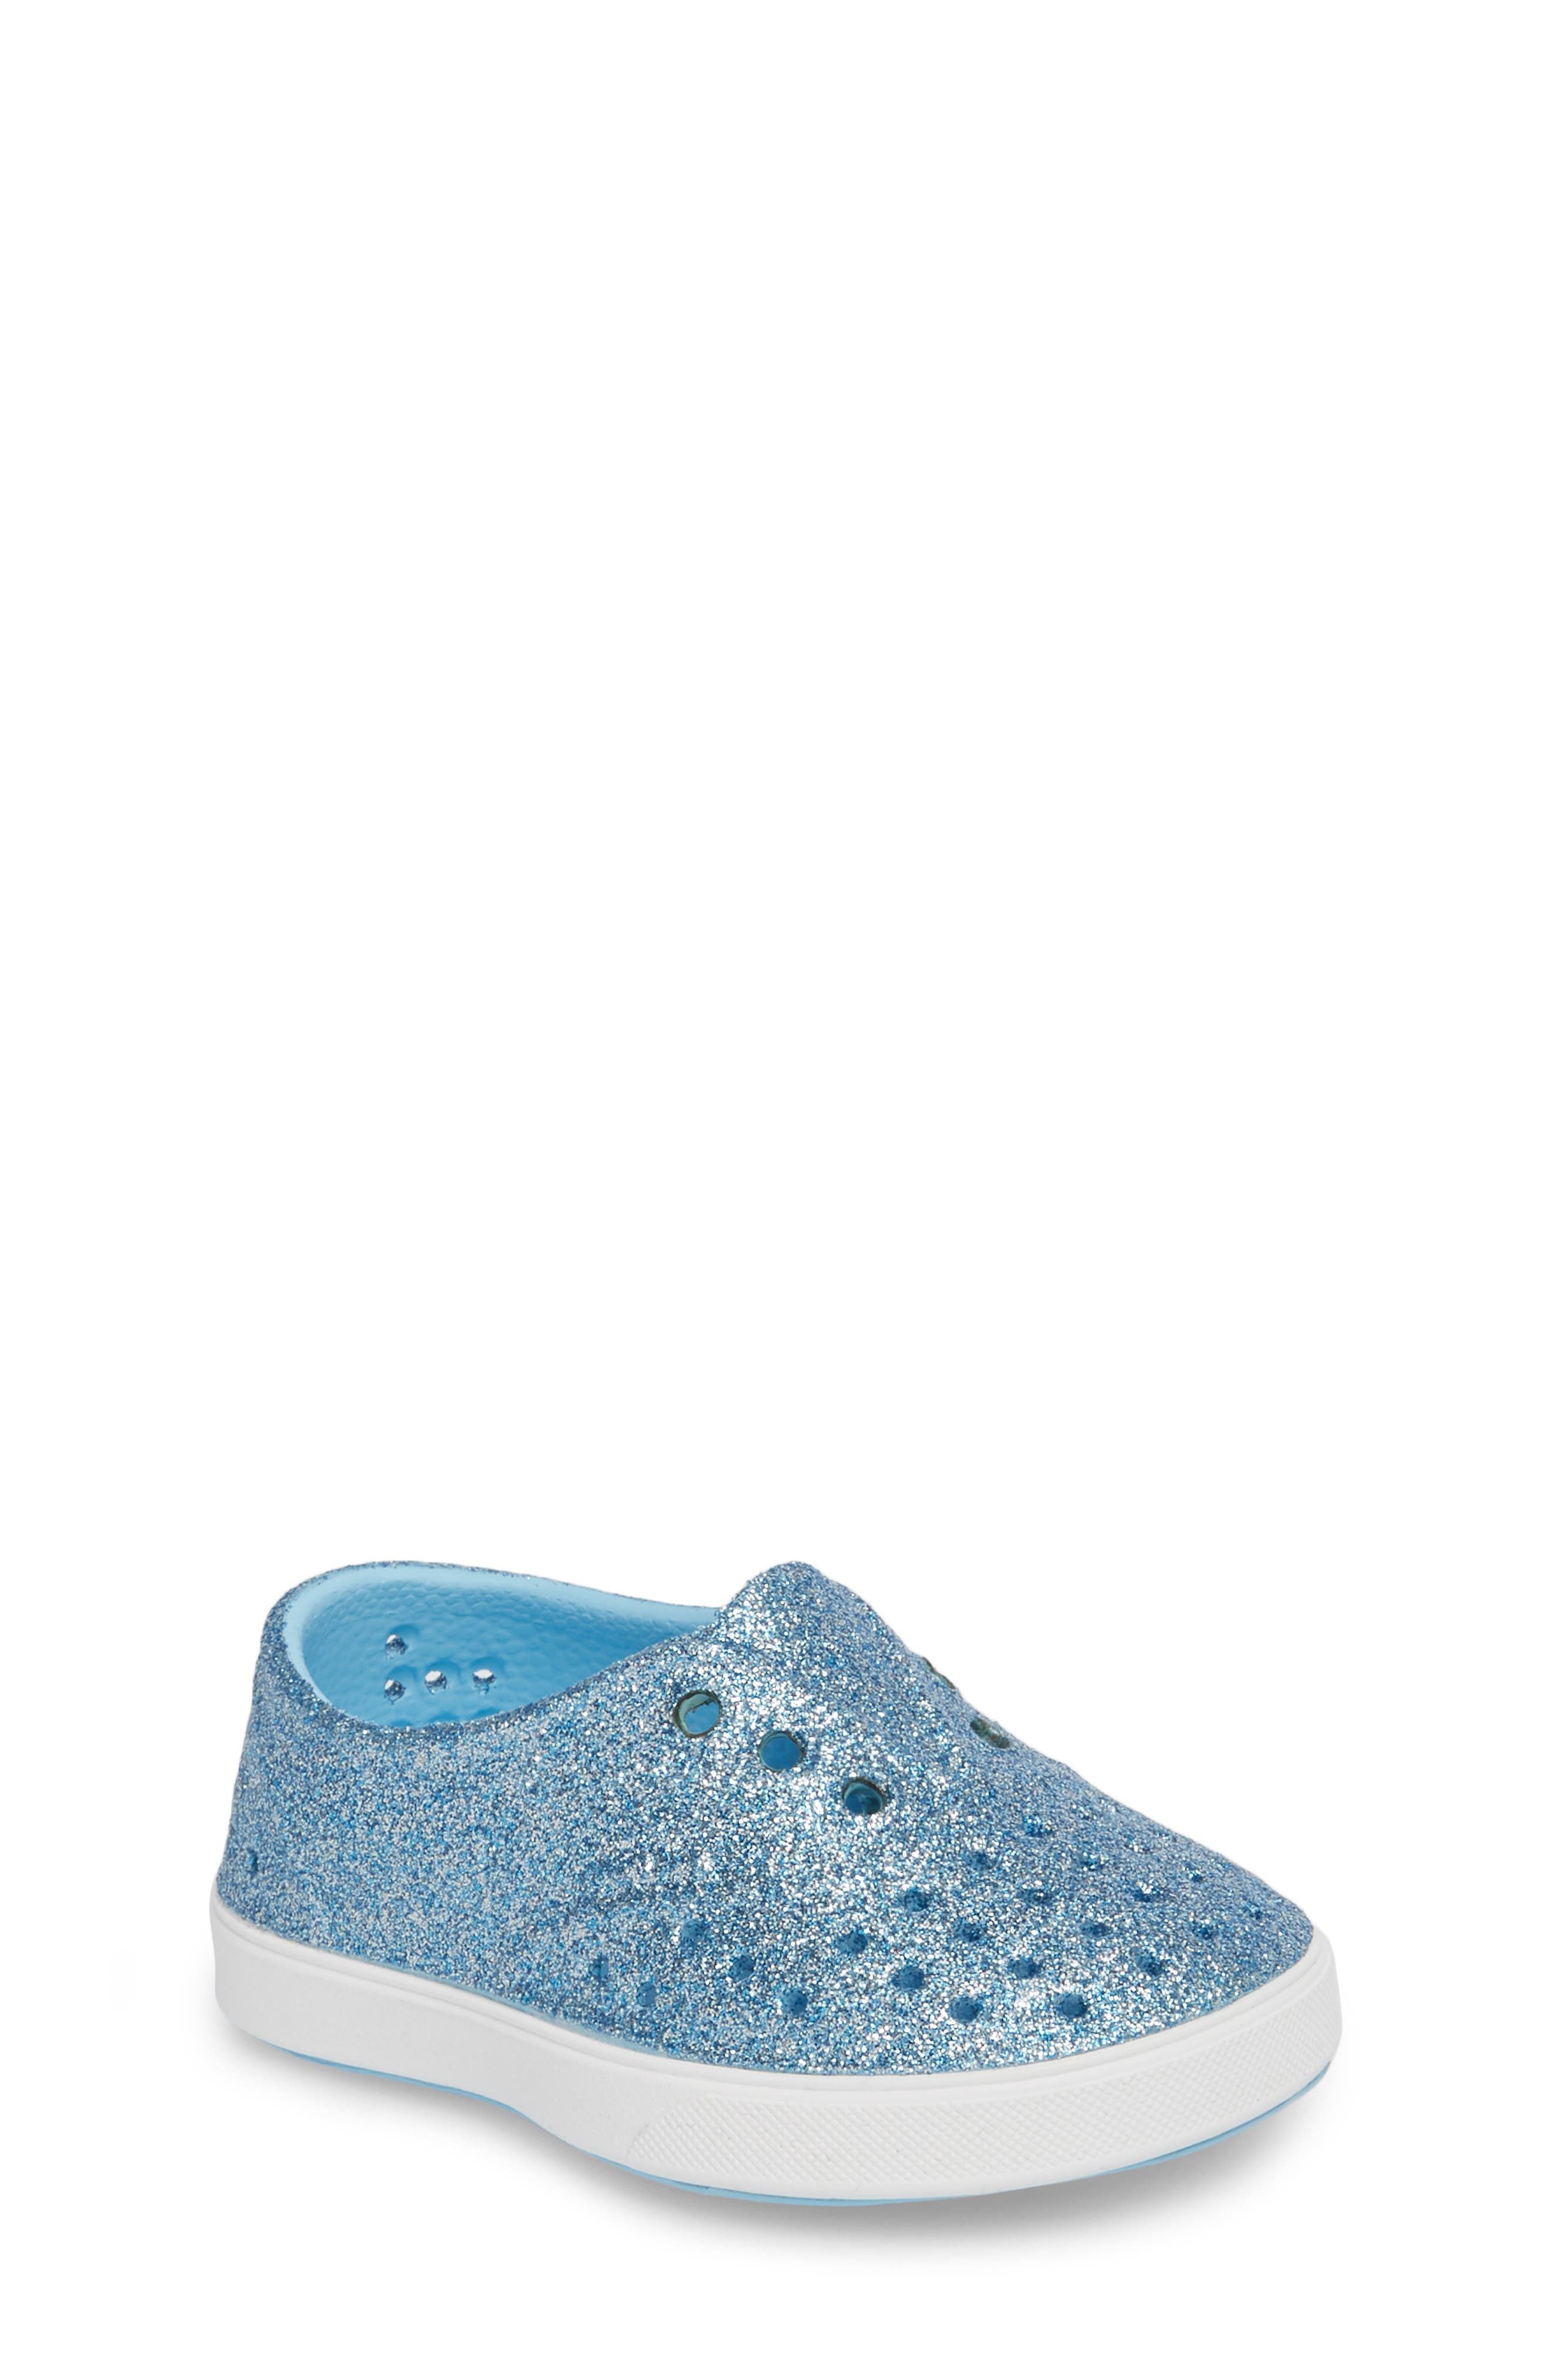 Native Shoes Miller Sparkly Perforated Slip-On (Walker, Toddler & Little Kid)